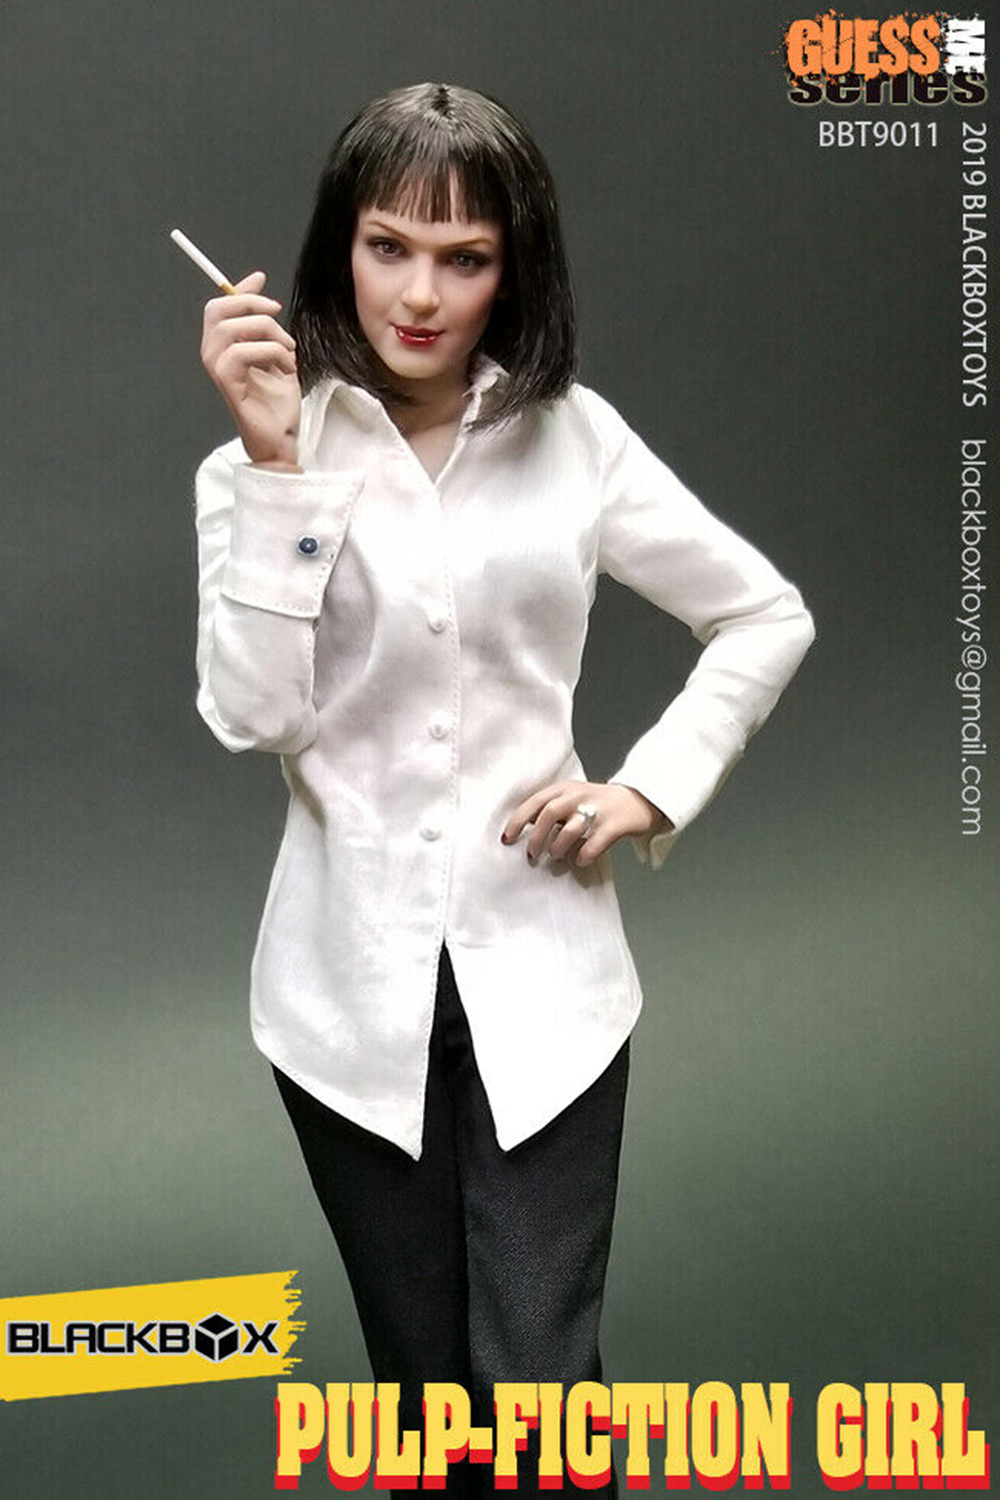 Full set doll for collection Pulp Fiction Girl Mia Wallace 1/6 Female Figure Body Toys BBT9011 Acces 1